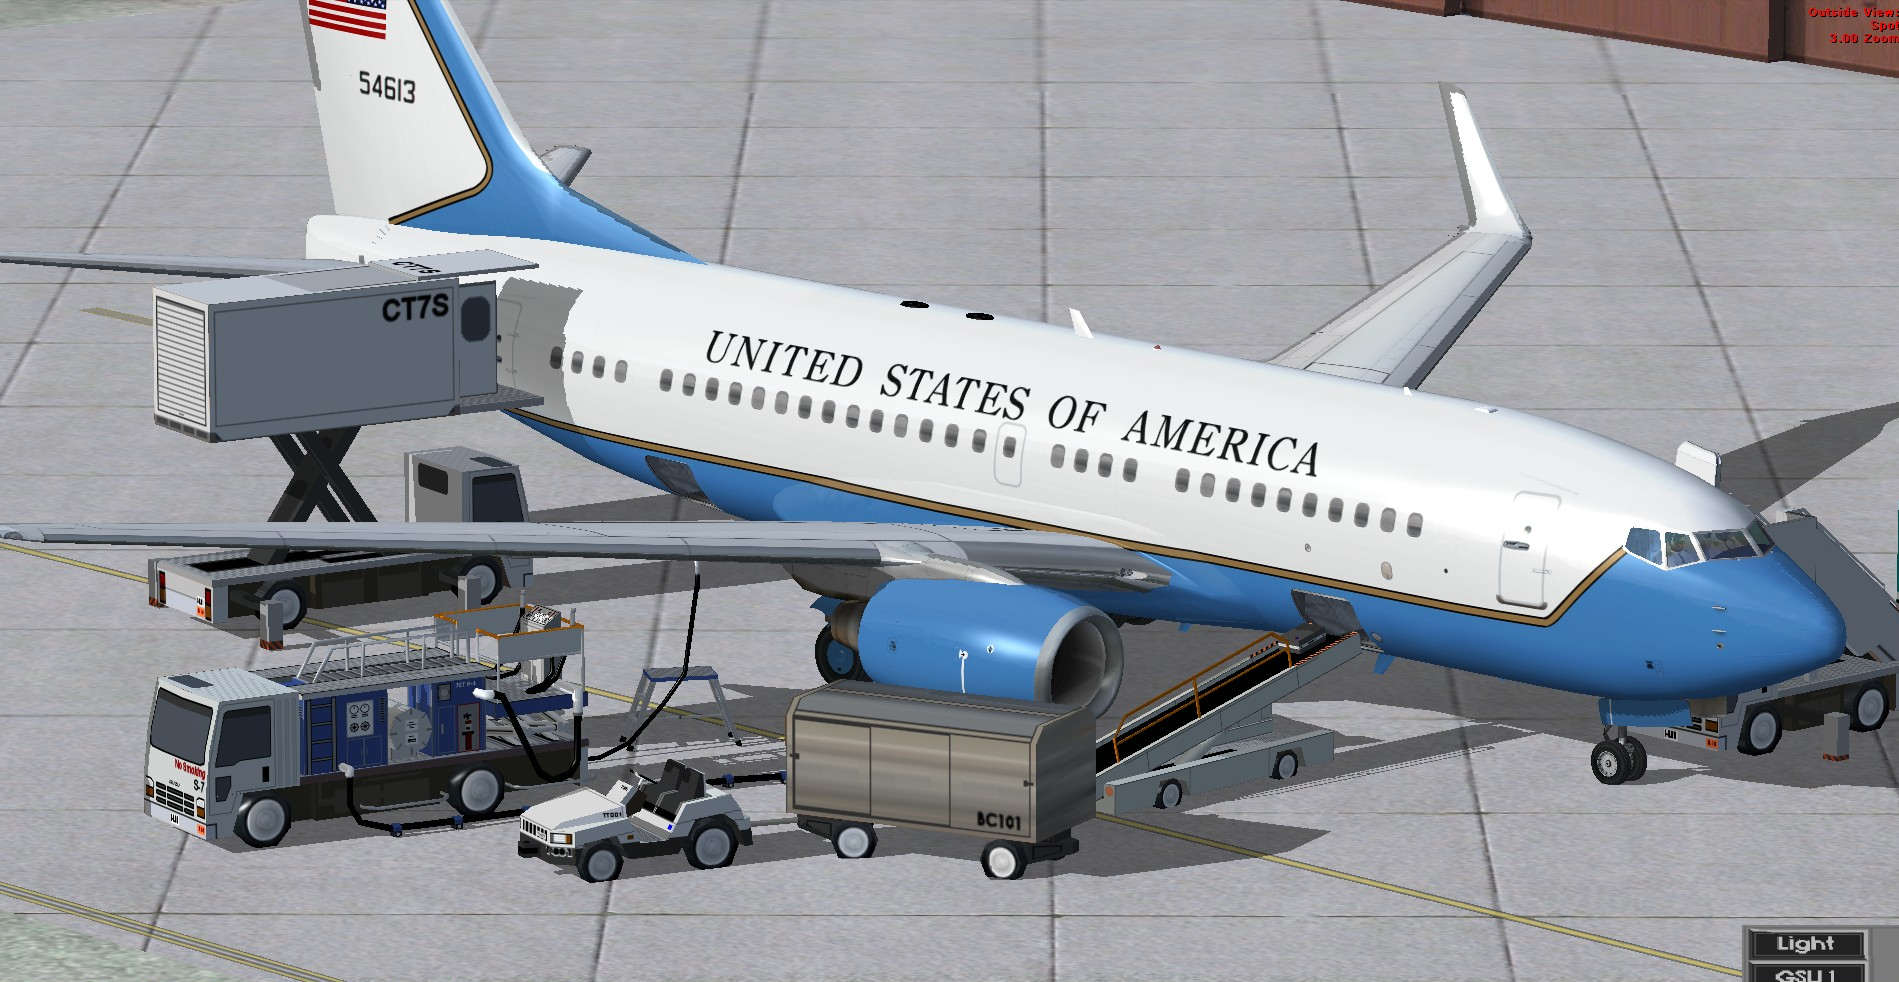 fs-freeware net - FSX TDS Boeing 737-700 U S A F 54613 Package with VC